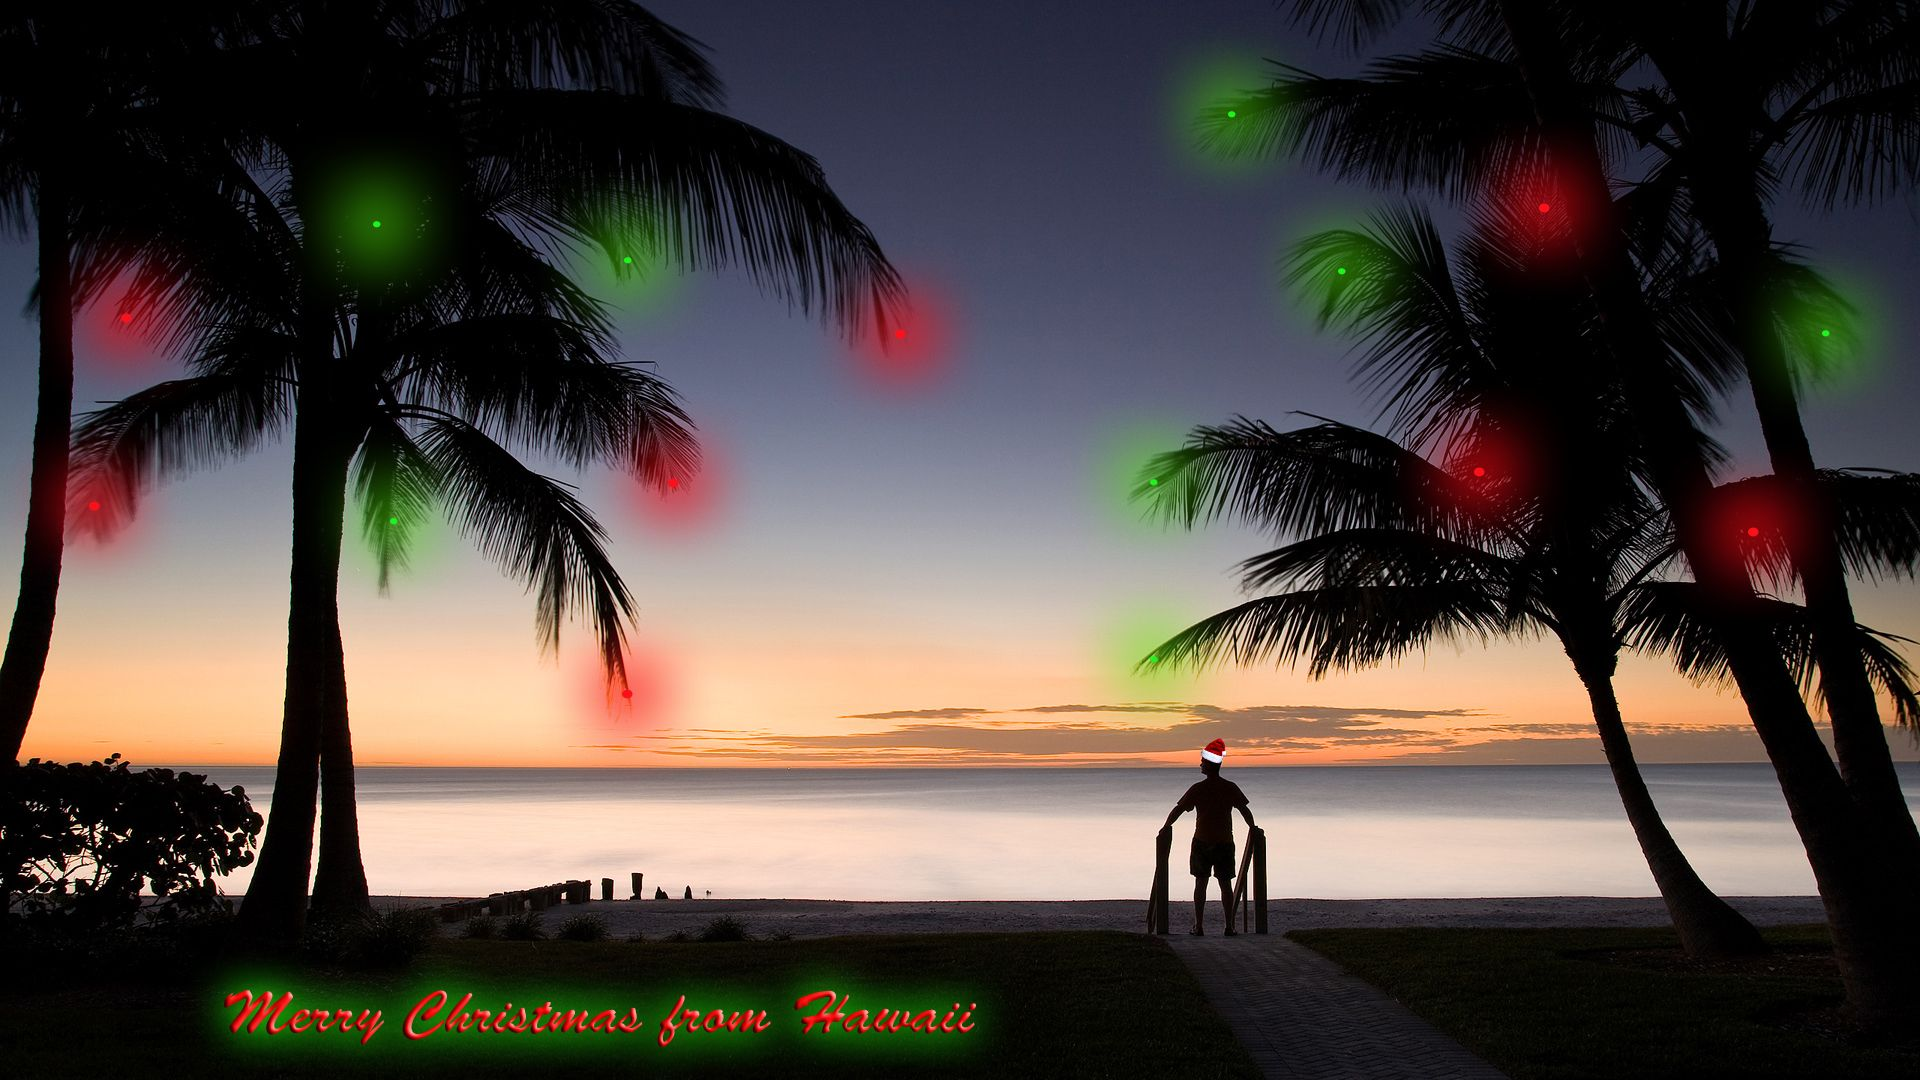 Merry Christmas From Hawaii Beach Sunset Wallpaper Sunset Wallpaper Beach Silhouette